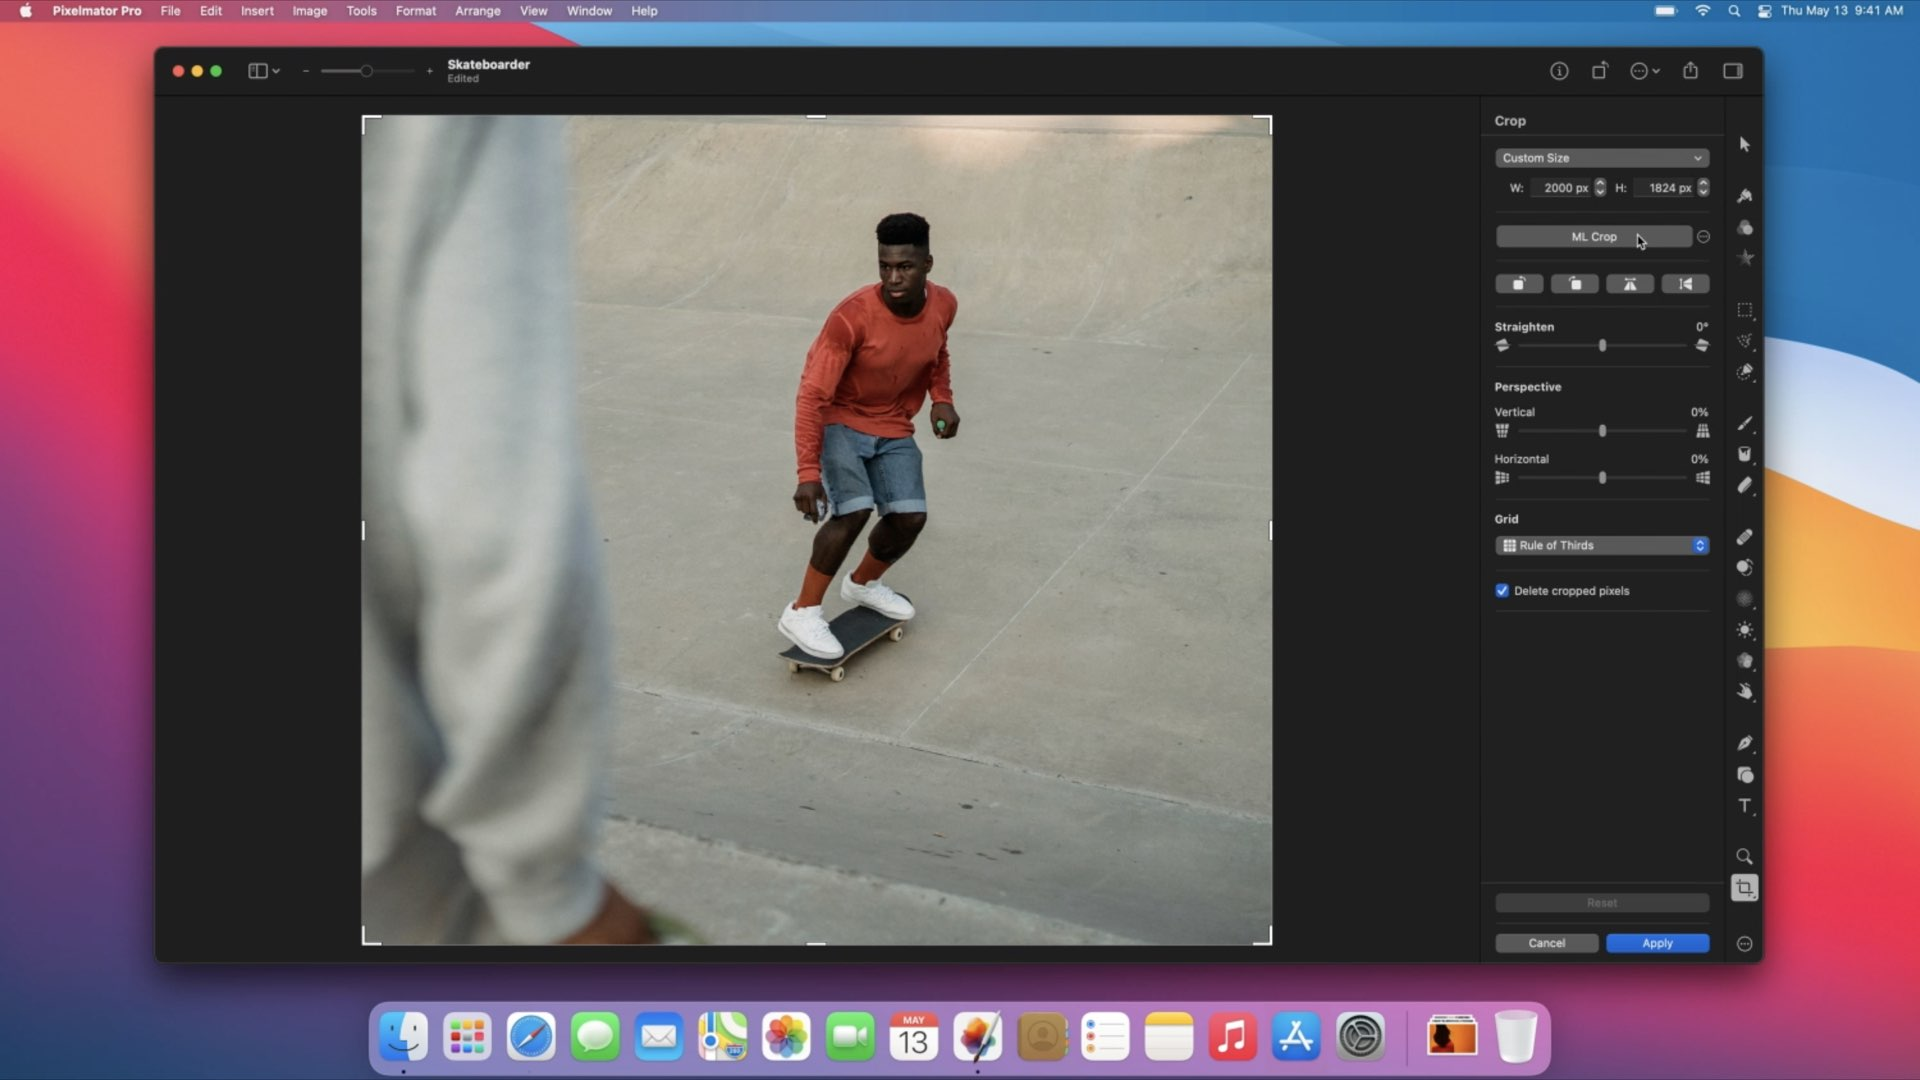 A still from the official video promoting the ML Crop feature in Pixelmator Pro 2.1 for Mac